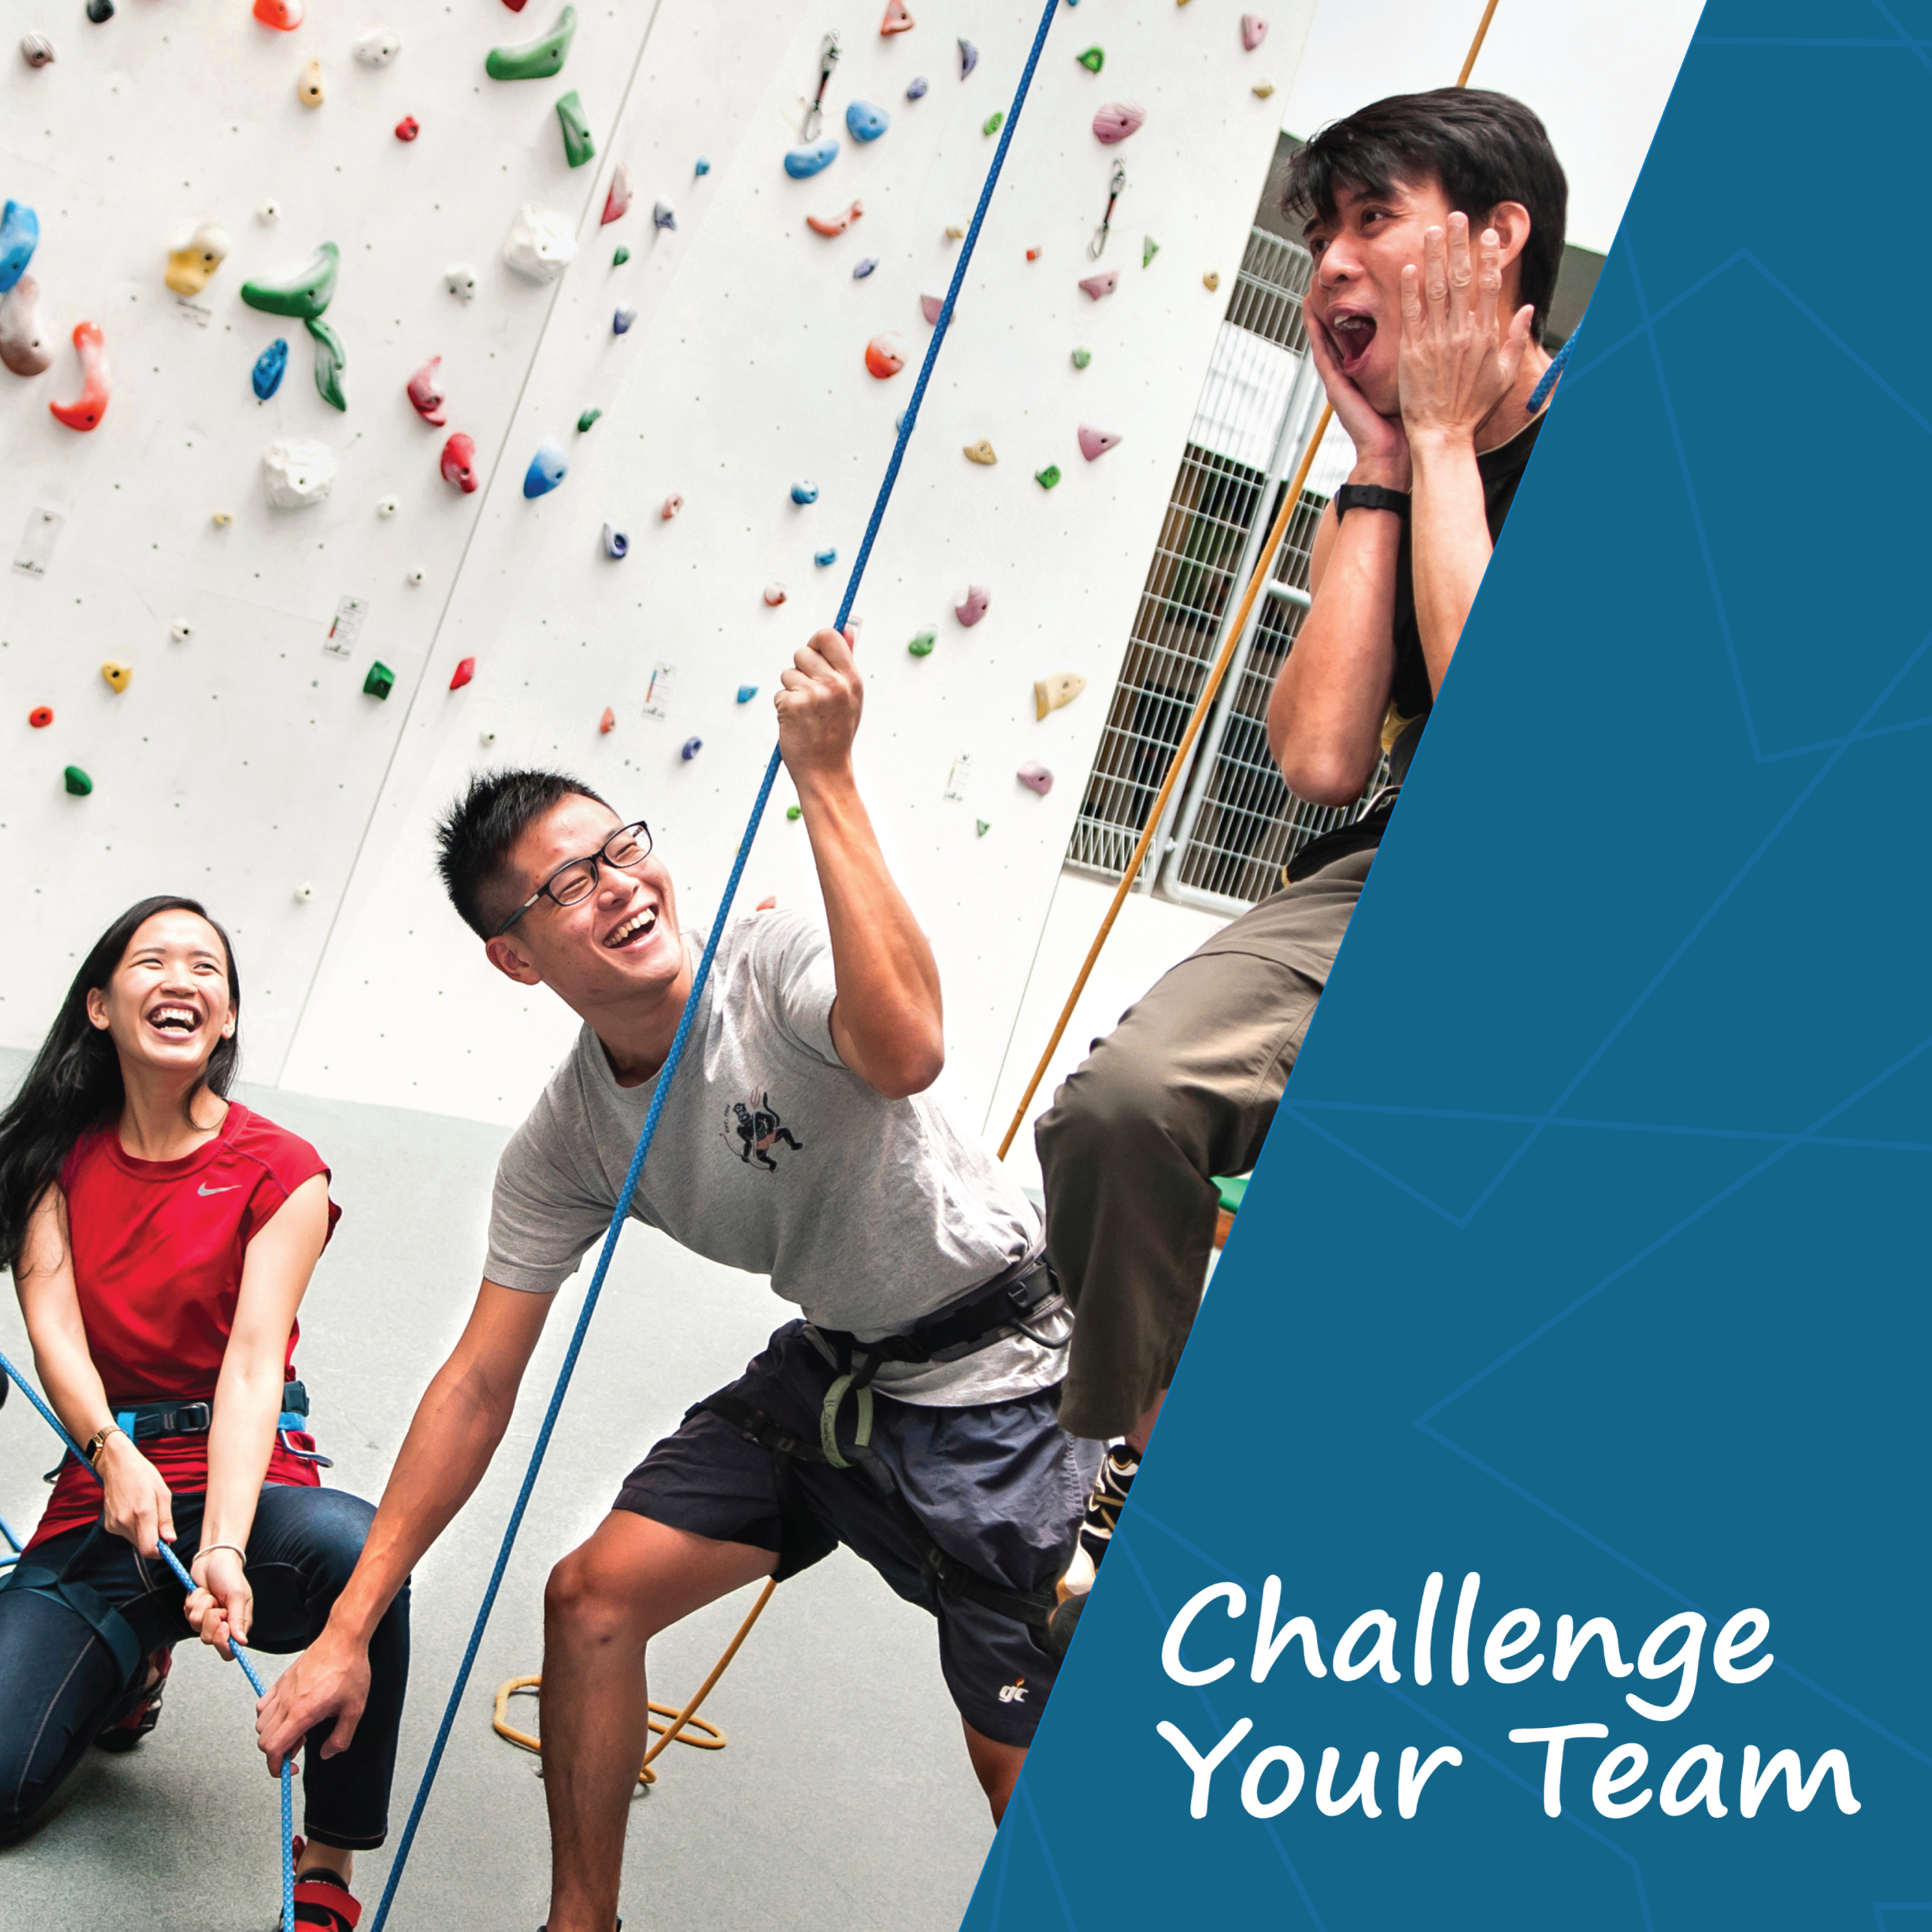 BETA CORPORATE - Challenge your team through a day of rock climbing, games and interaction!